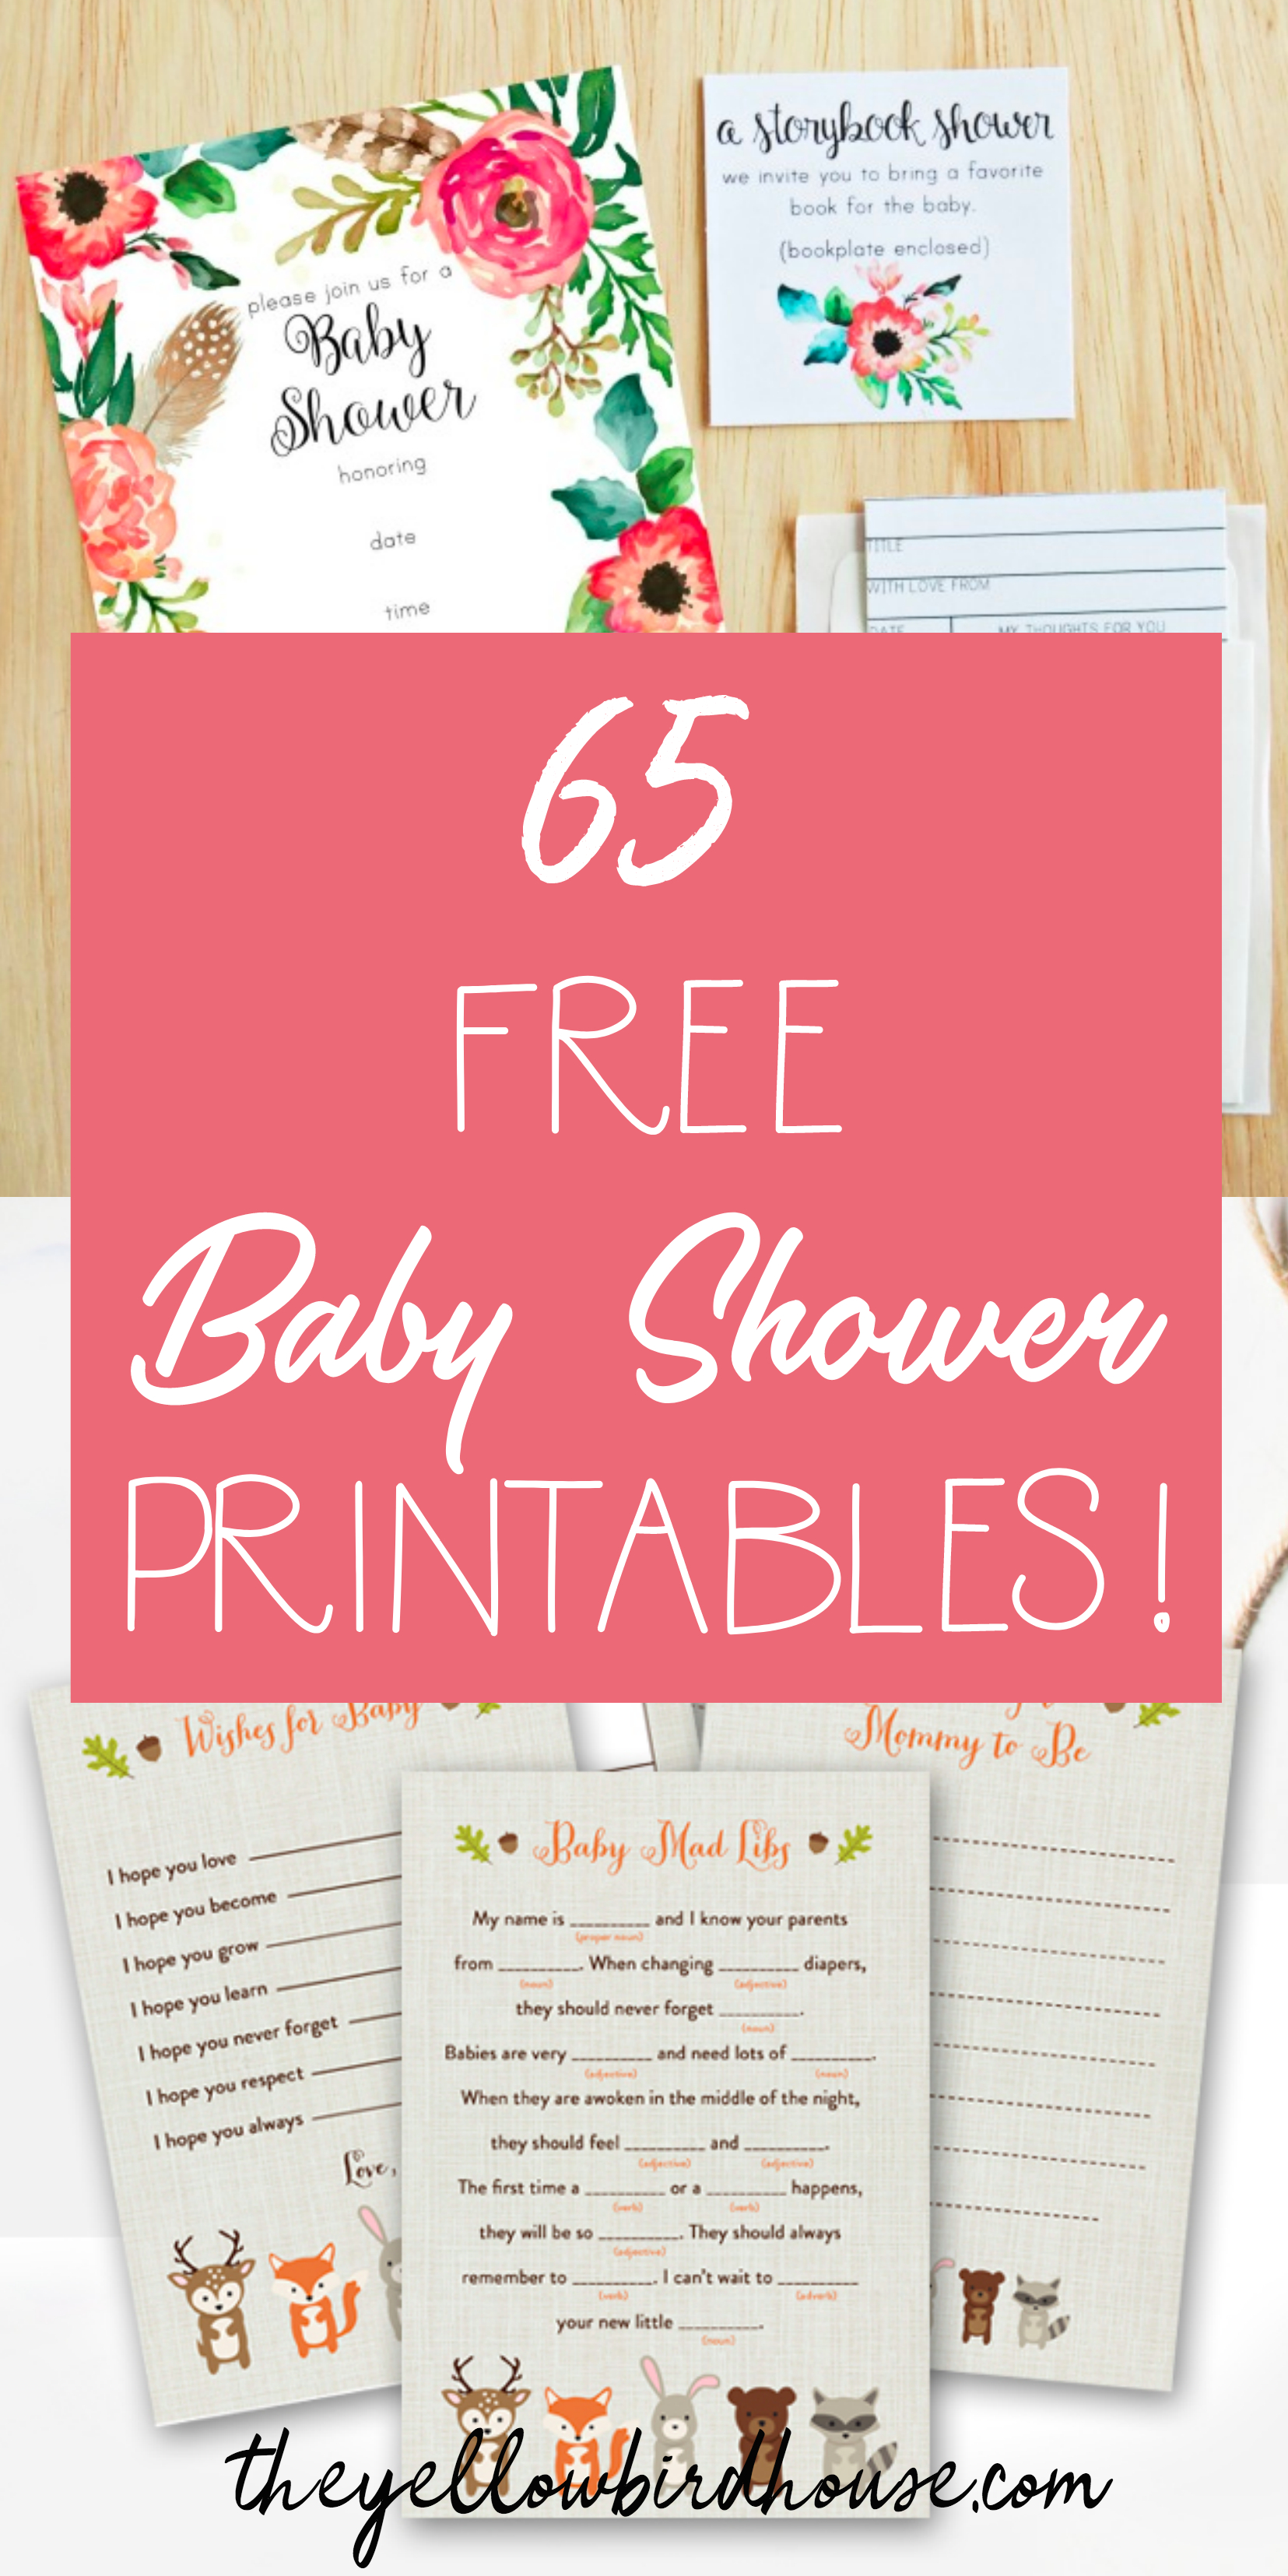 65 Free Baby Shower Printables For An Adorable Party - Free Printable She's Ready To Pop Labels